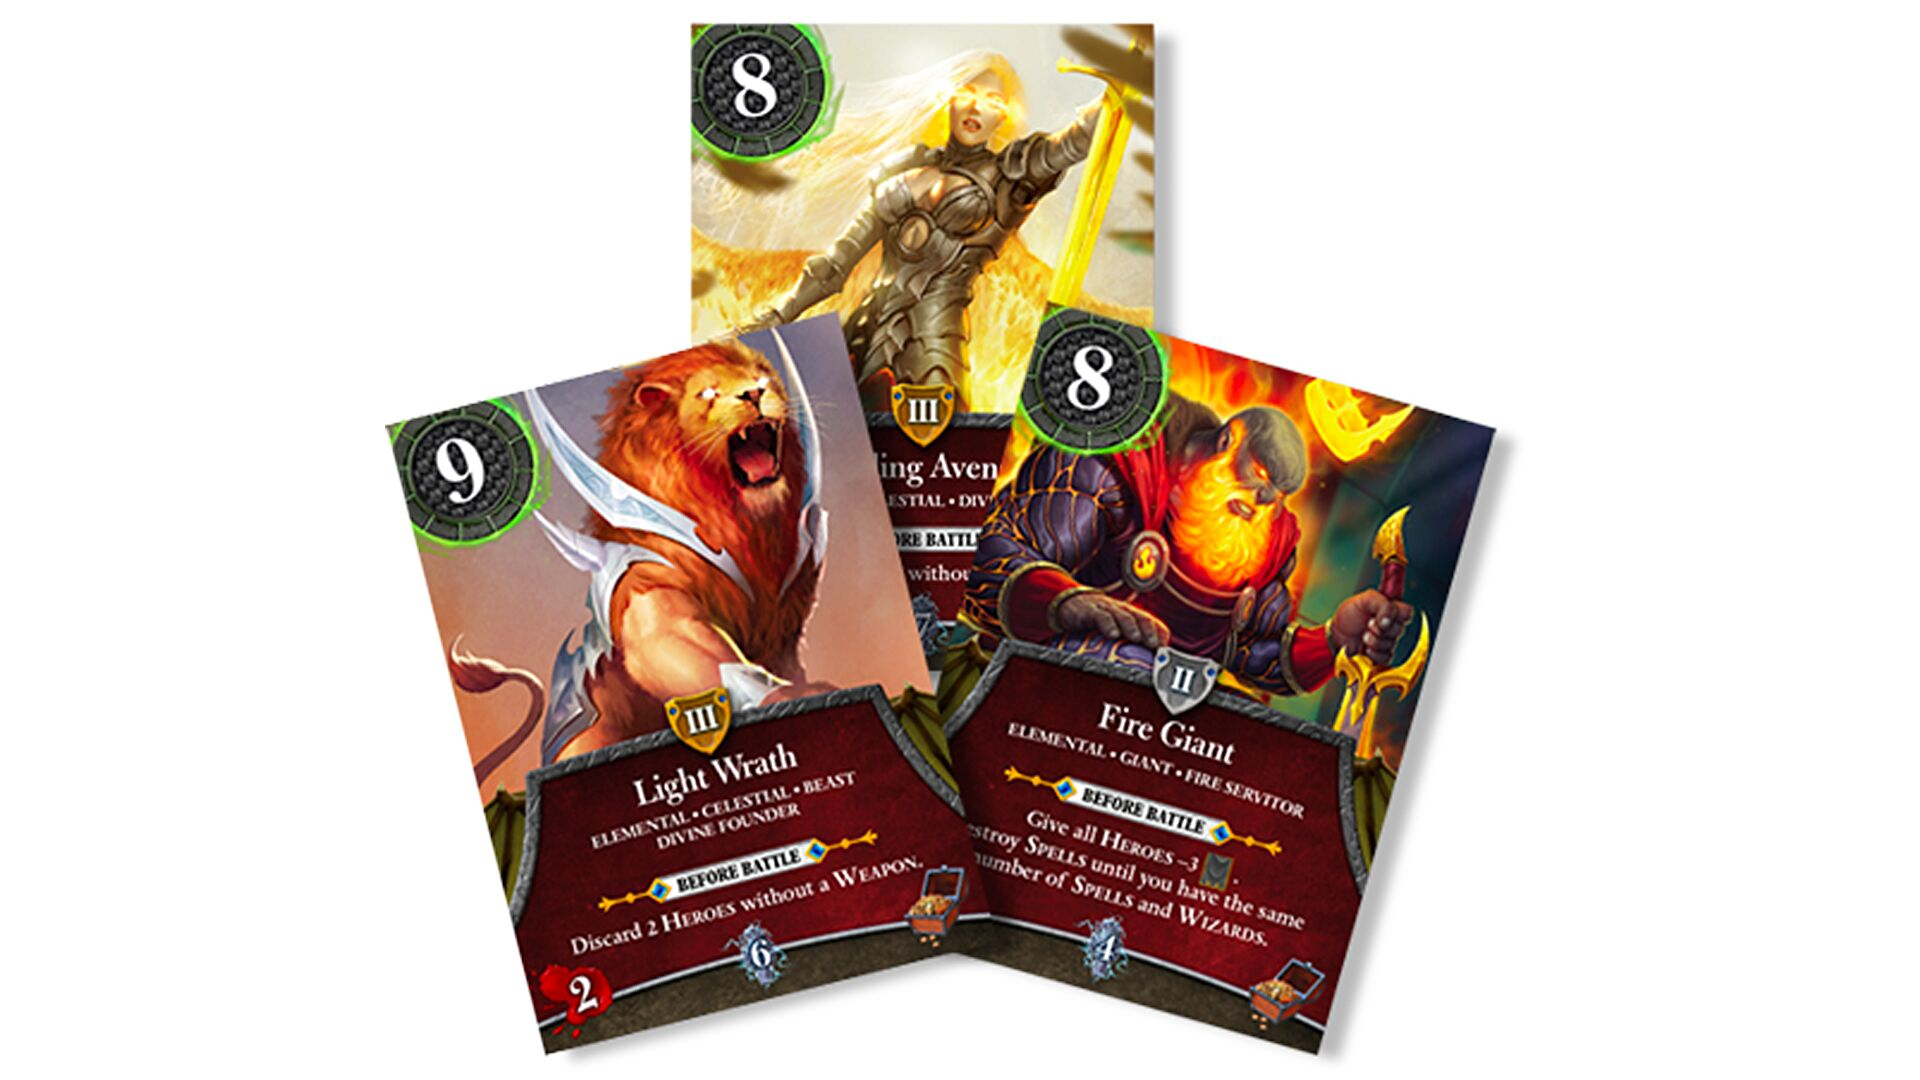 Thunderstone Quest is D&D meets Dominion, and it's back on Kickstarter next week